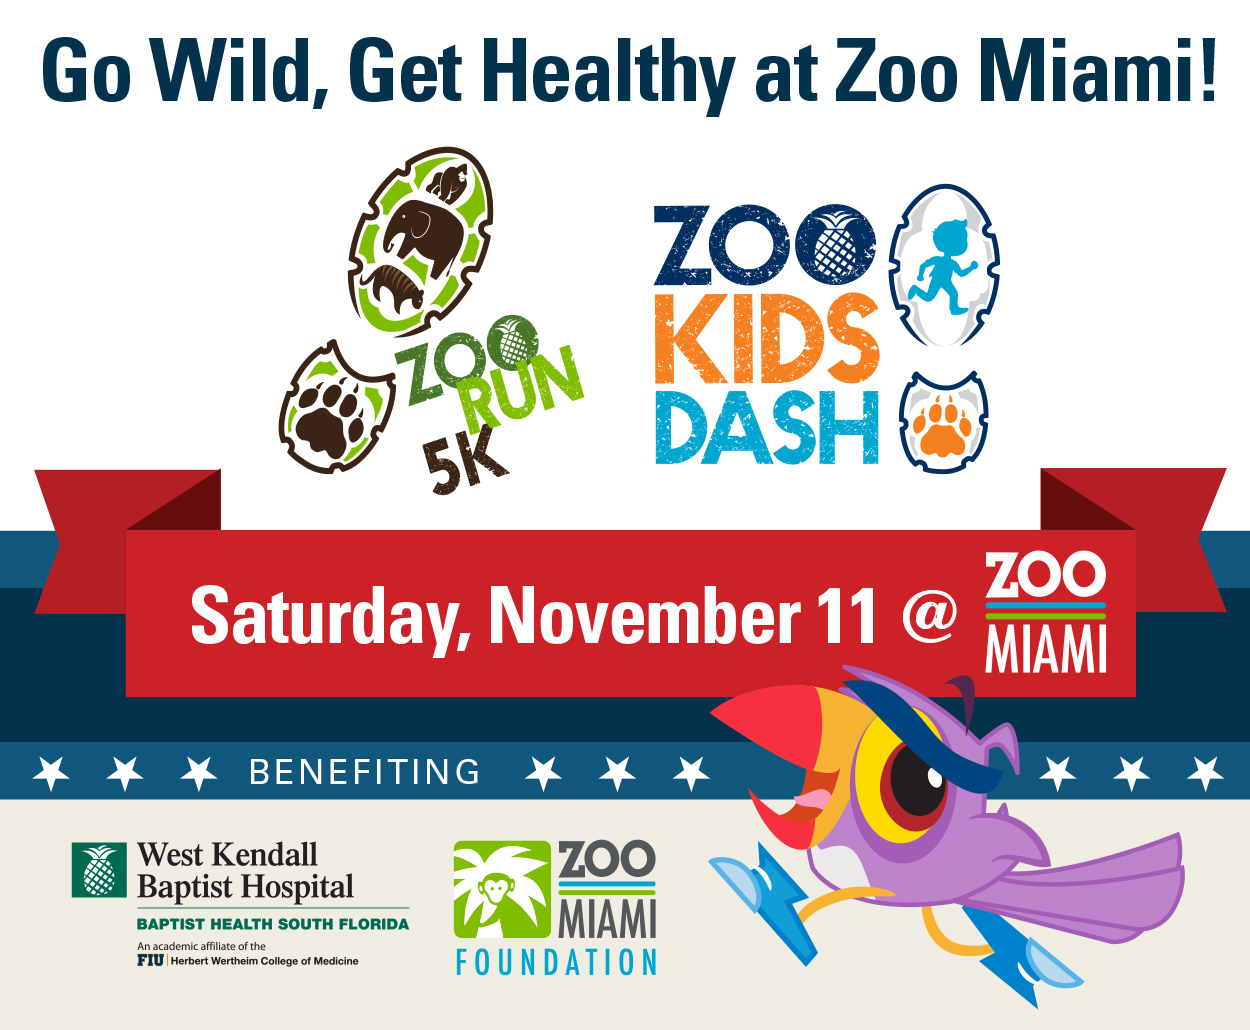 2017 ZooRun5K & ZooKidsDash benefiting West Kendall Baptist Hospital and Zoo Miami Foundation